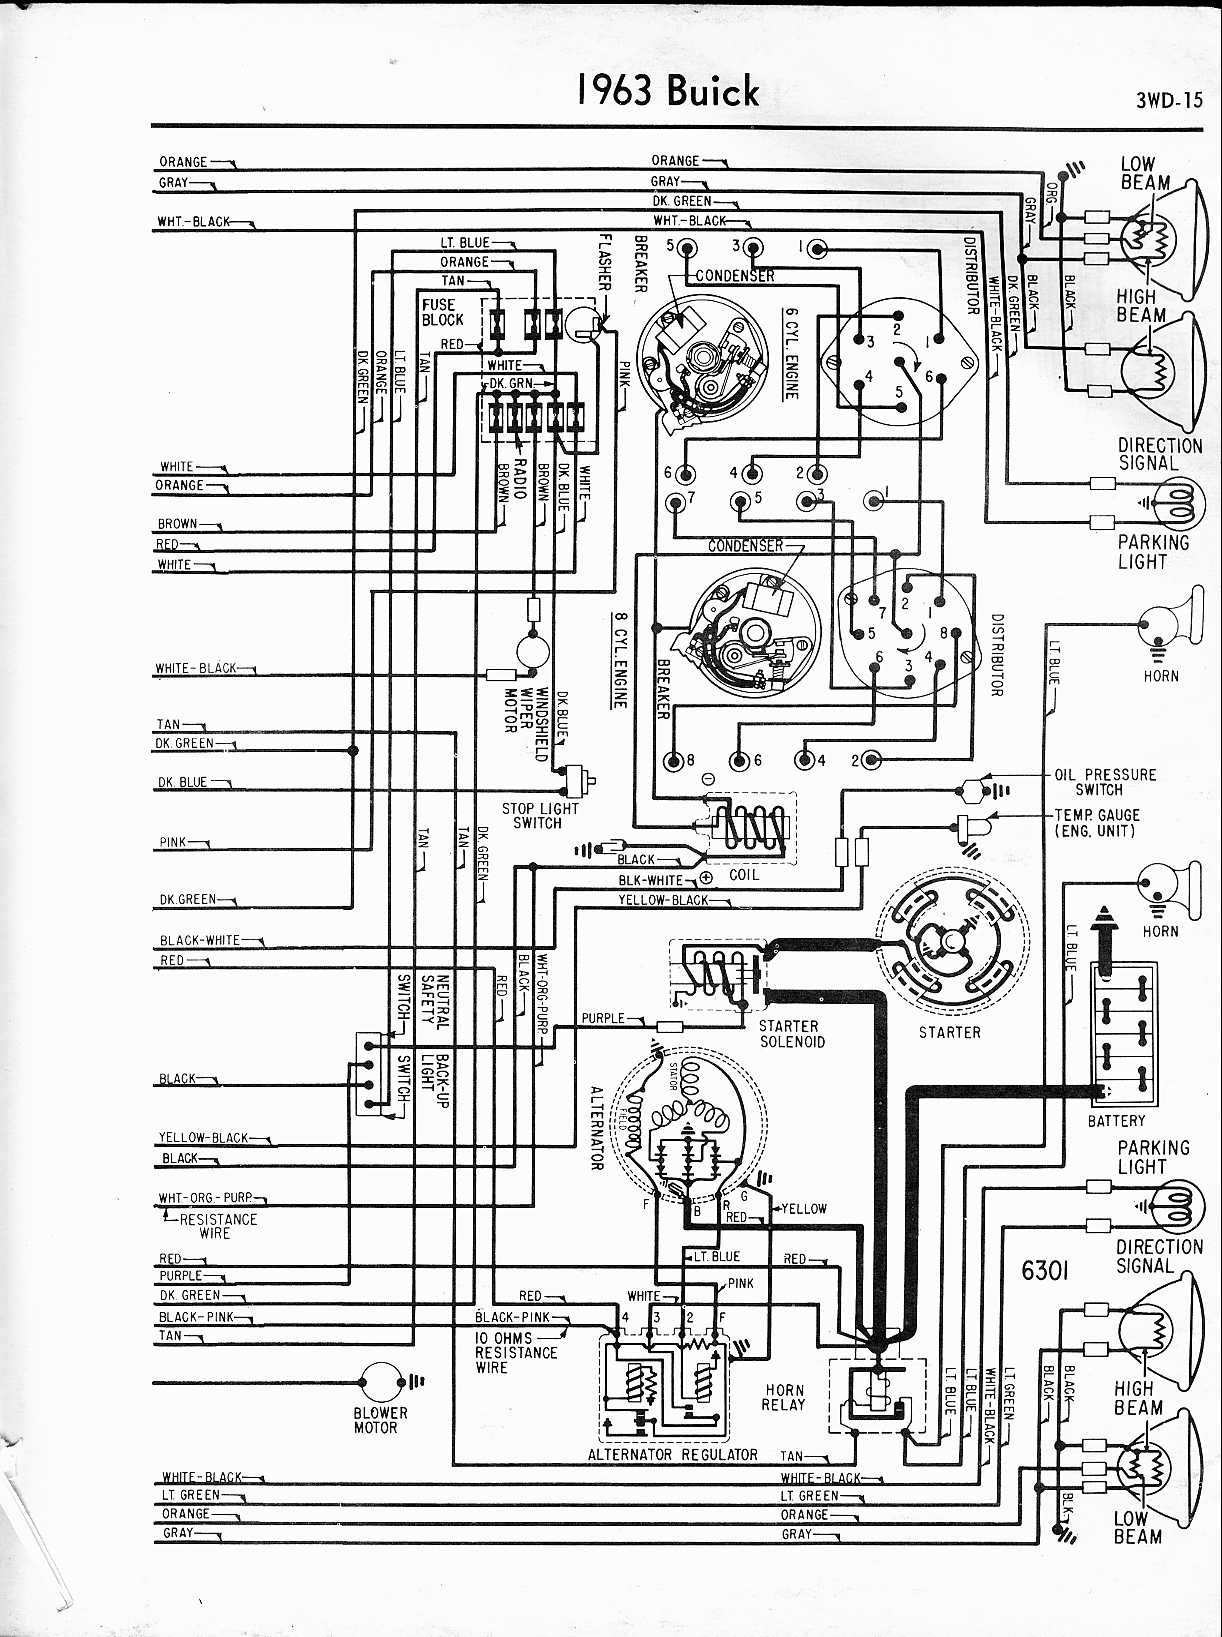 free buick wiring diagrams schematic wiring diagrams u2022 rh detox design co 1996 Buick Regal Ignition Switch Diagram 2004 Buick LeSabre Wiring-Diagram